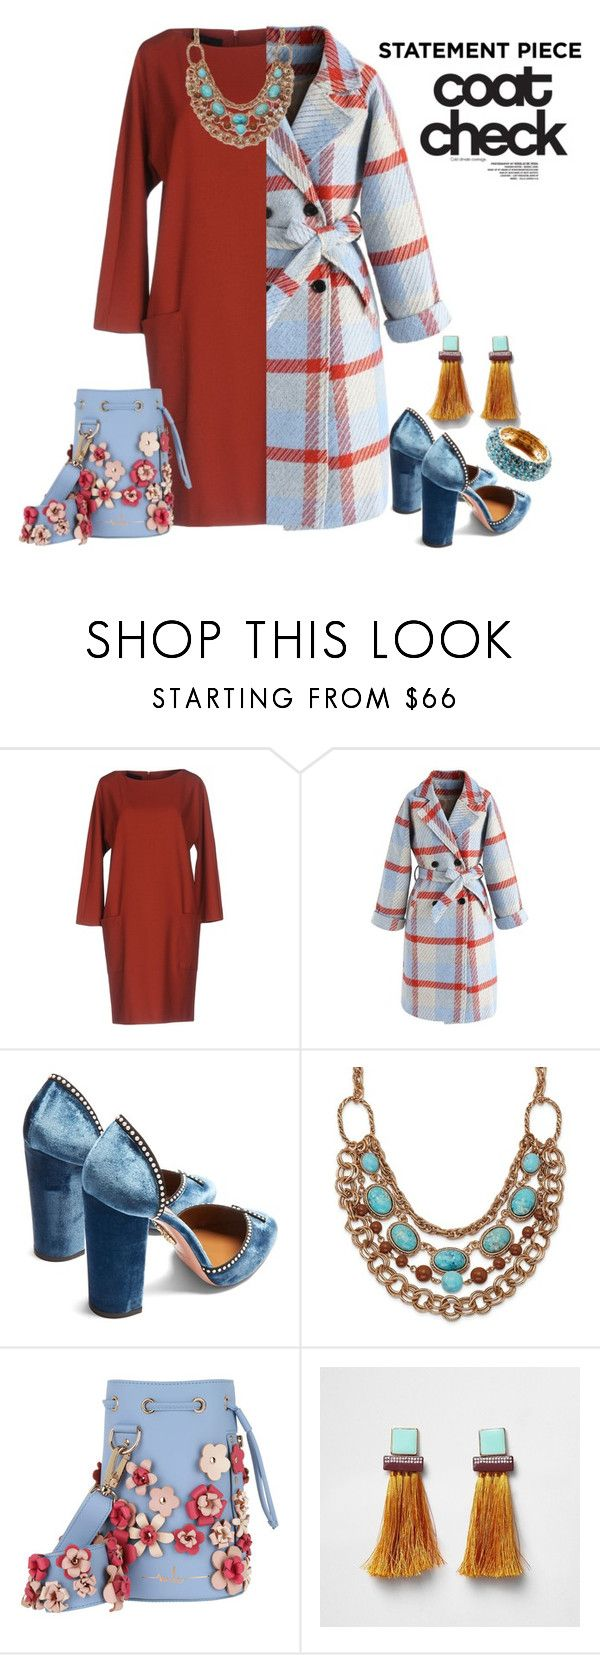 """""""Check Your Coat"""" by freida-adams ❤ liked on Polyvore featuring Blue Les Copains, Chicwish, Aquazzura, 1928, Marina Hoermanseder and Valentino"""